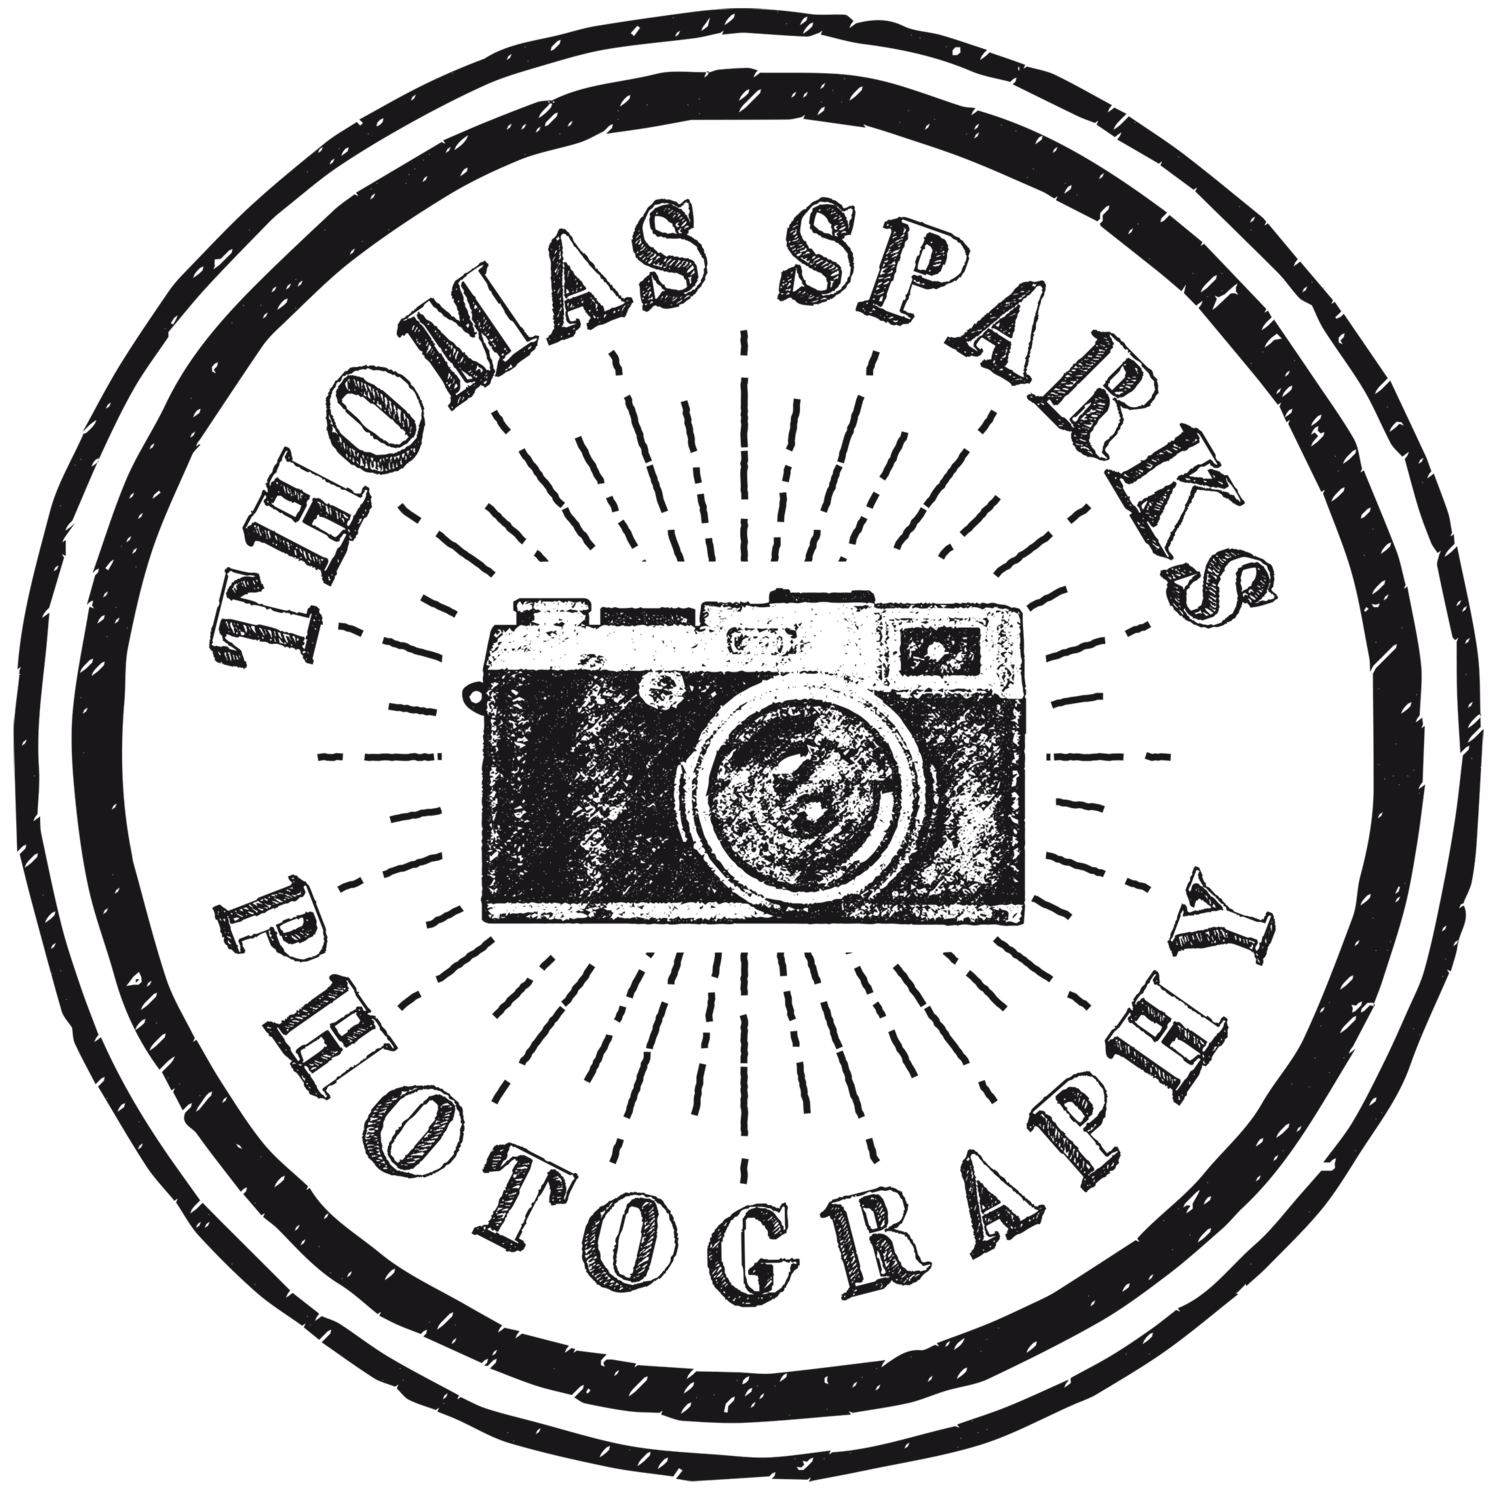 Thomas Sparks Photography